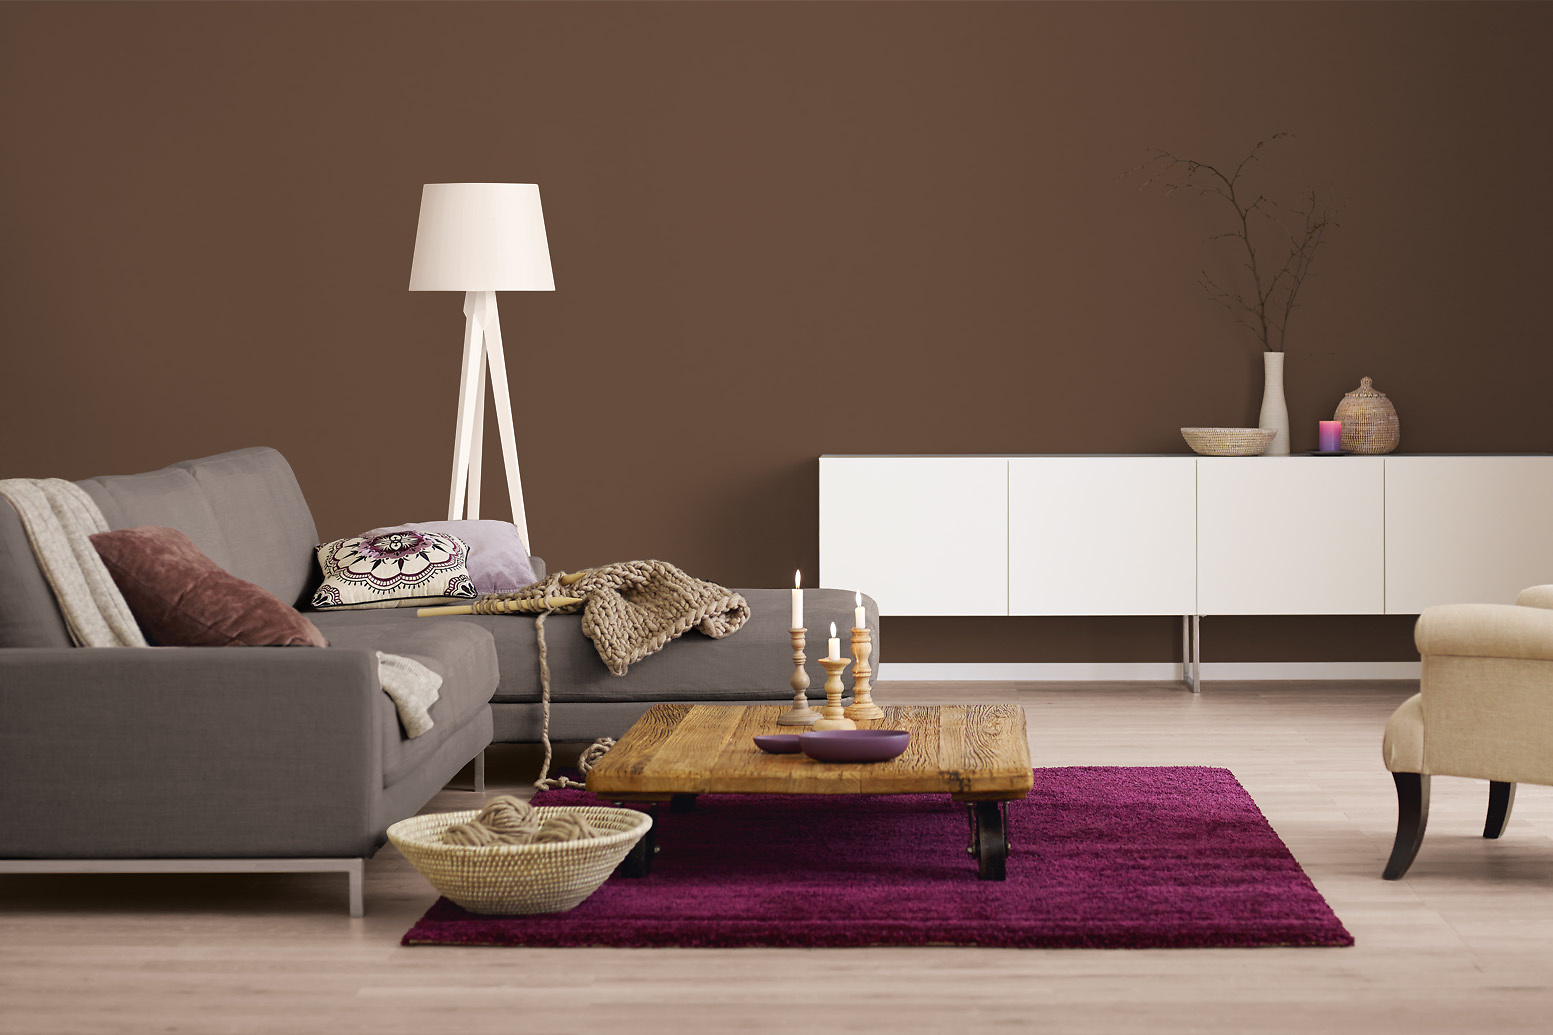 innenfarbe in braun dunkelbraun streichen alpina farbrezepte chocolat alpina farben. Black Bedroom Furniture Sets. Home Design Ideas